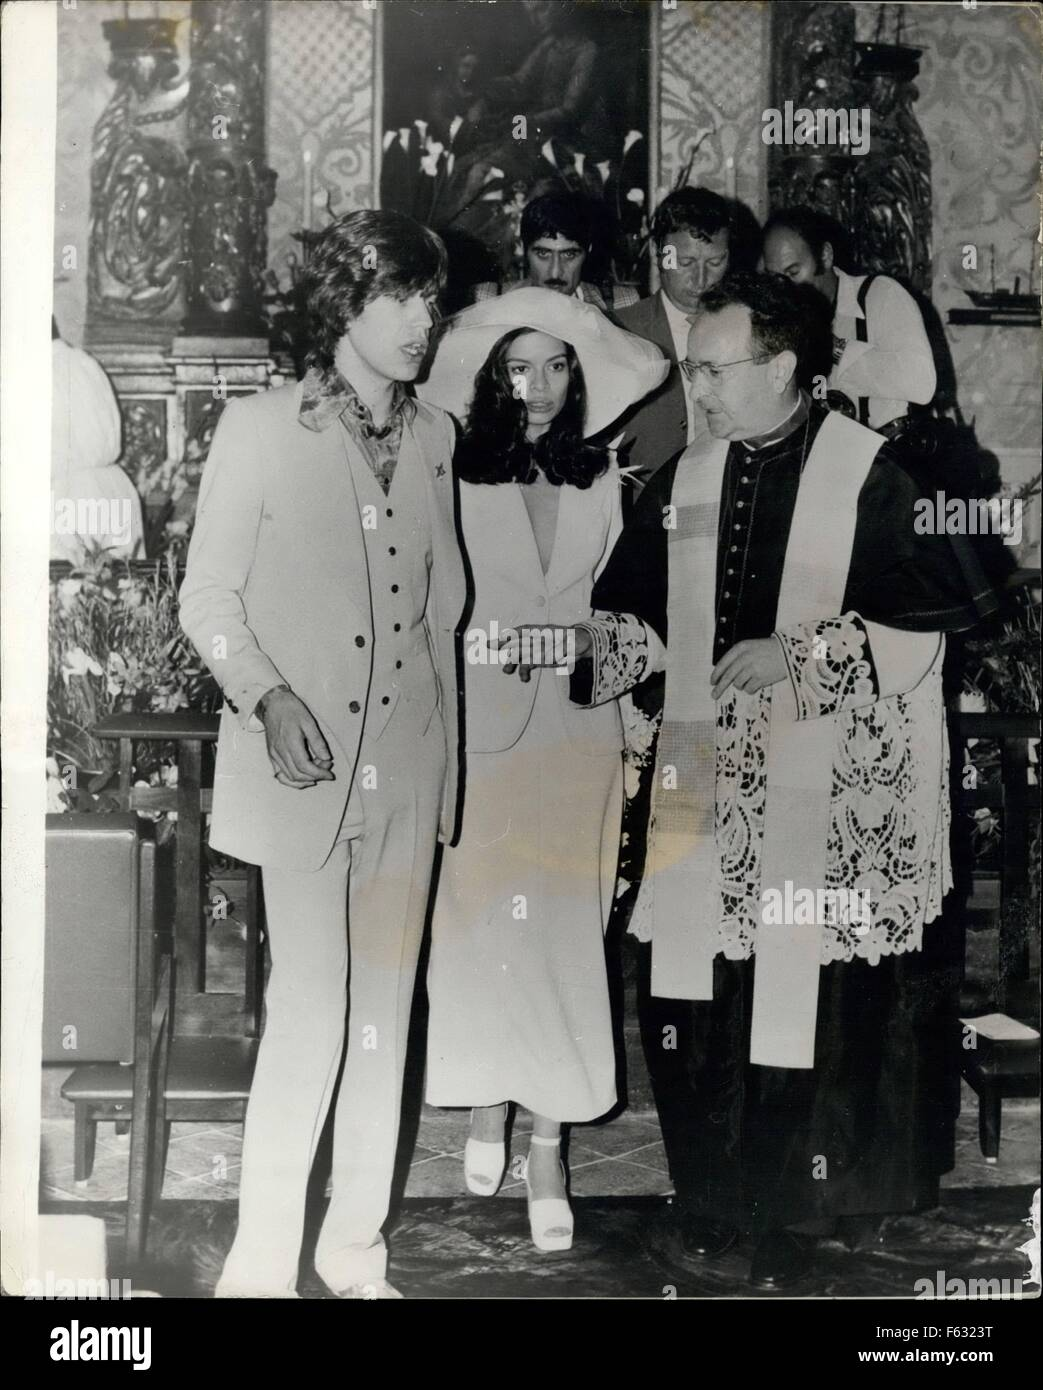 1972 - A complete uproar at Jagger wedding in St. Tropez Mick Jagger of the Rolling Stones was married earlier this - Stock Image